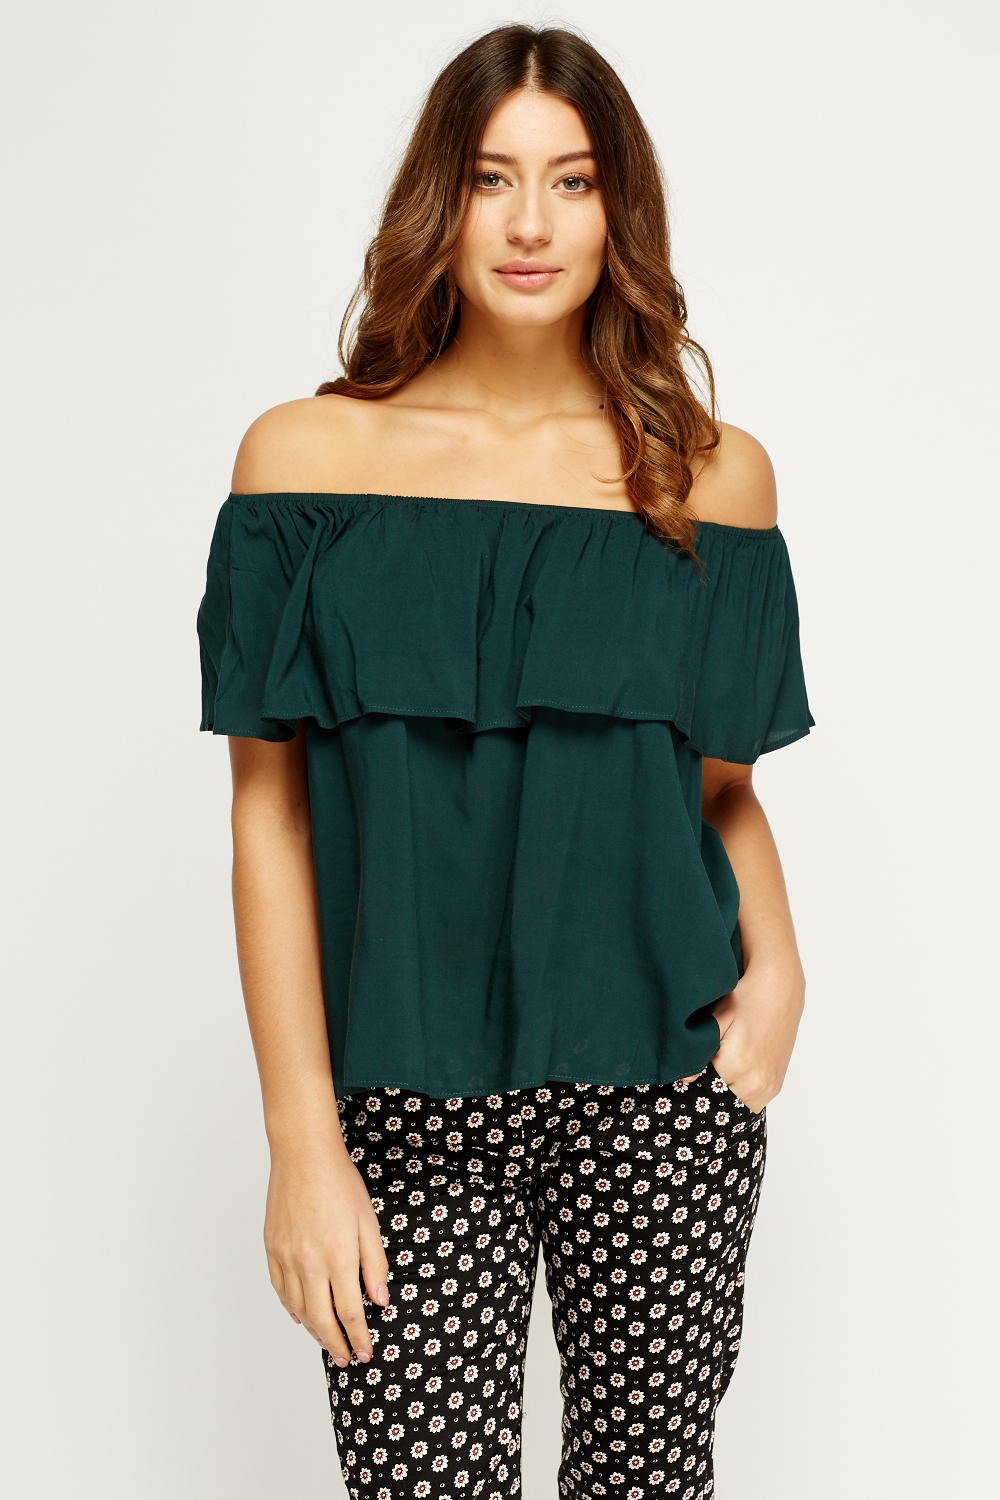 Flare Off Shoulder Dark Green Top - Just £5 ae86814be